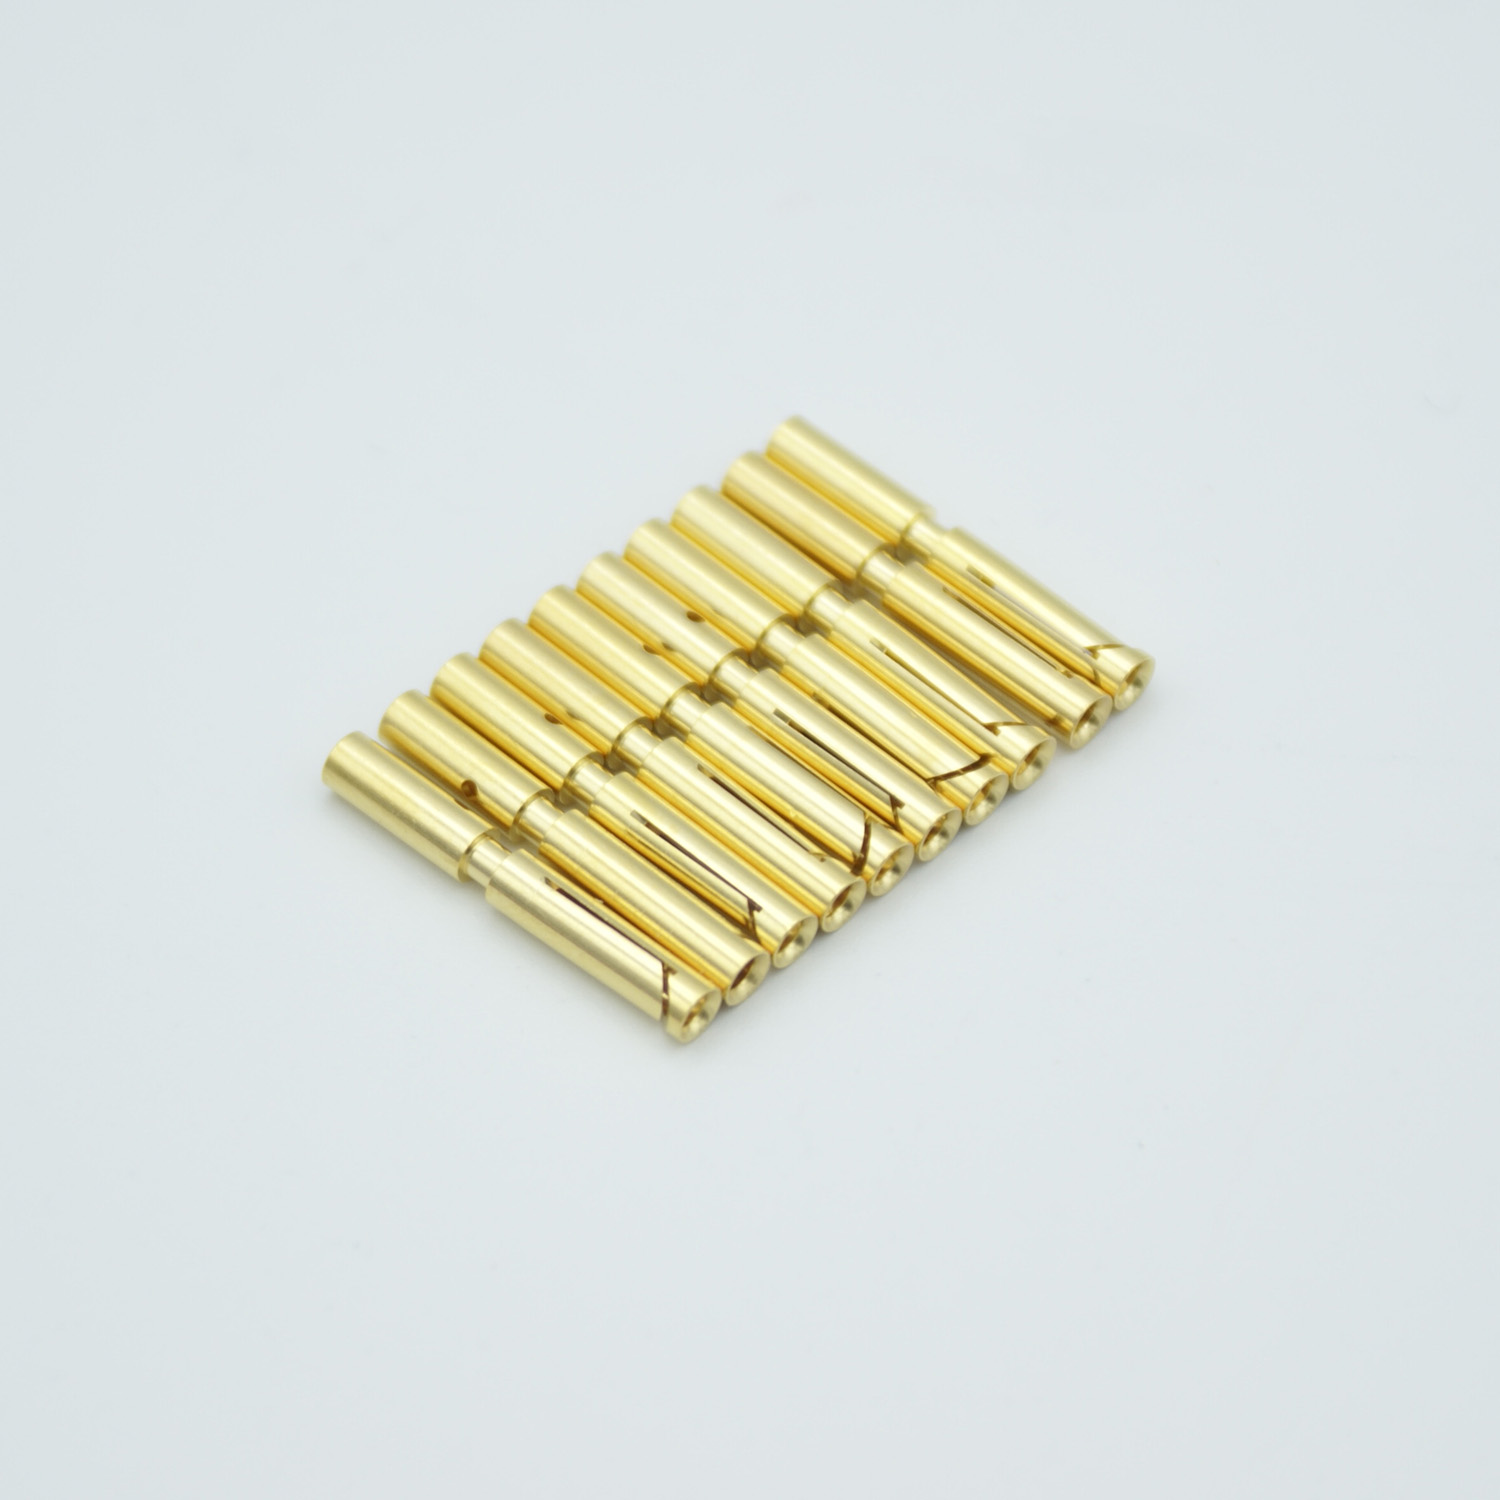 Power crimp type connectors for pin size 0,062